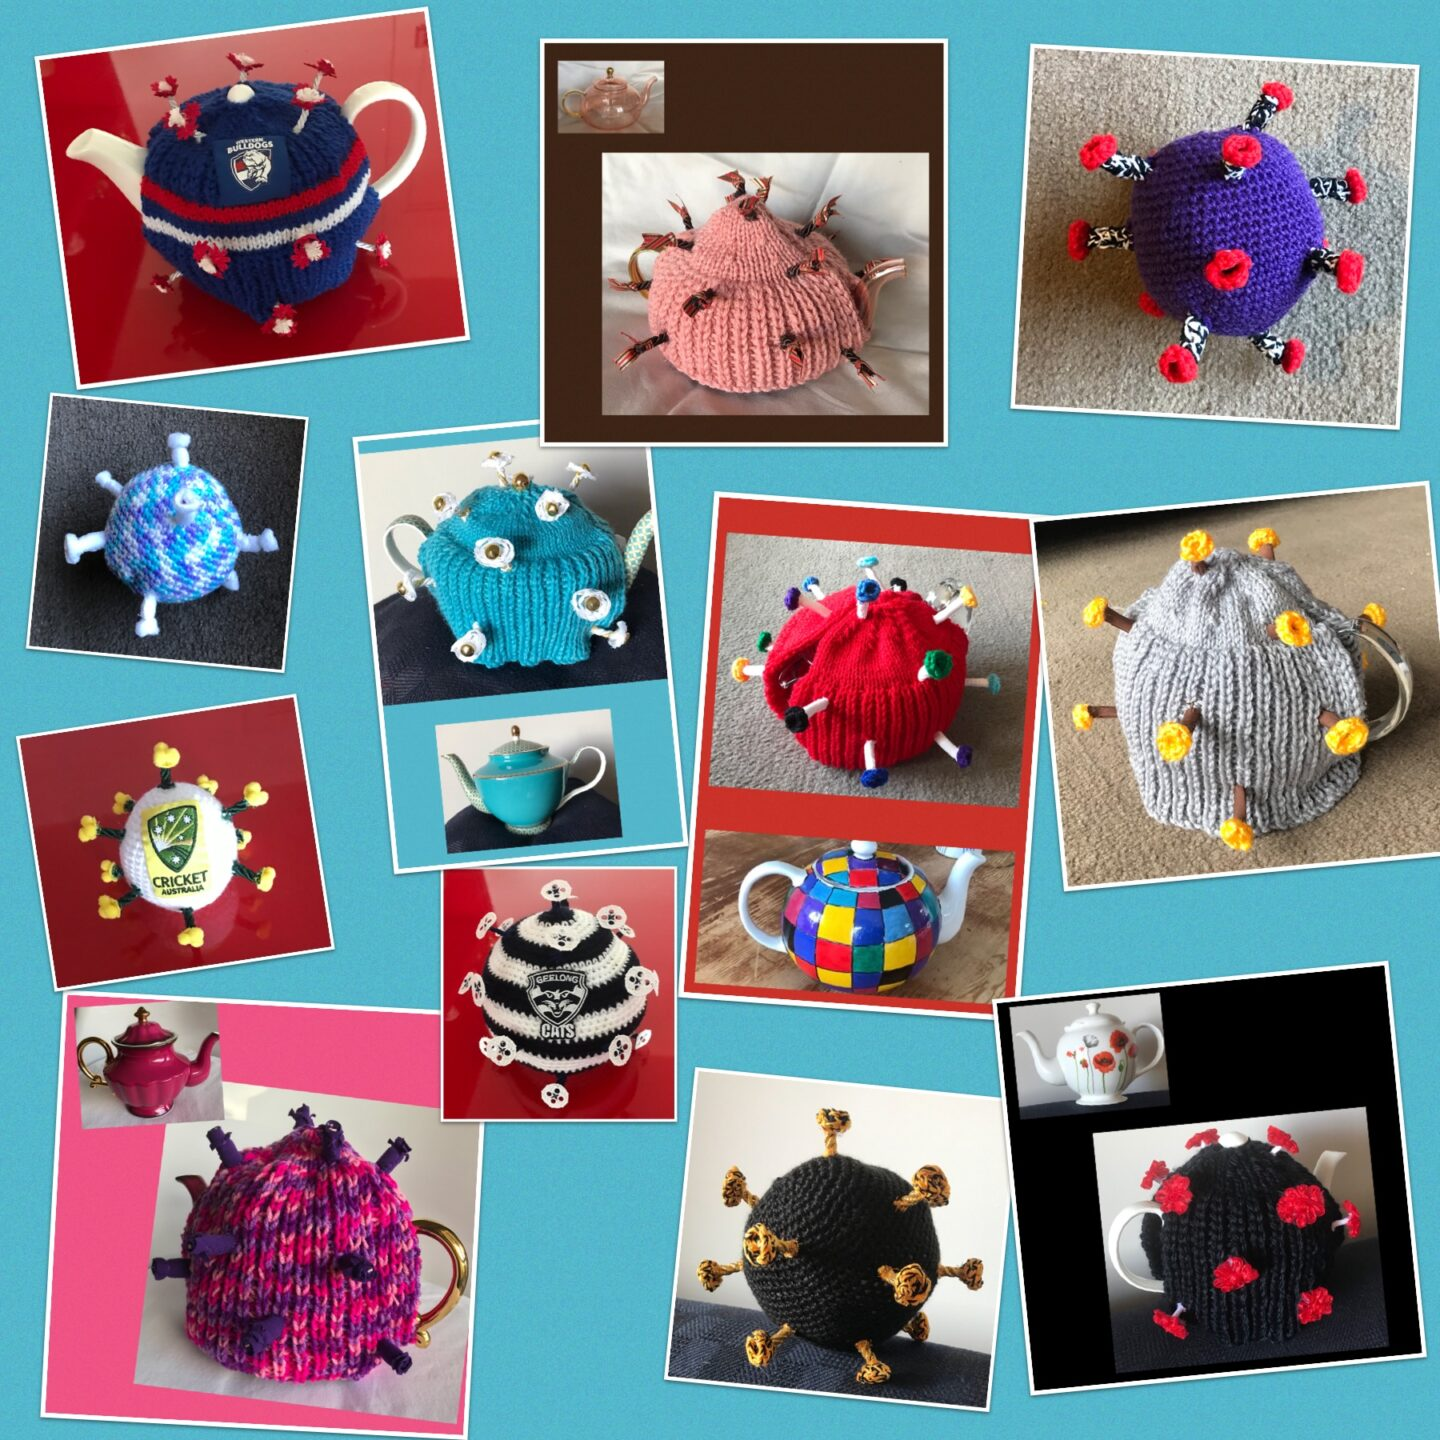 A selected of knitted tea cosies in a COVID virus design